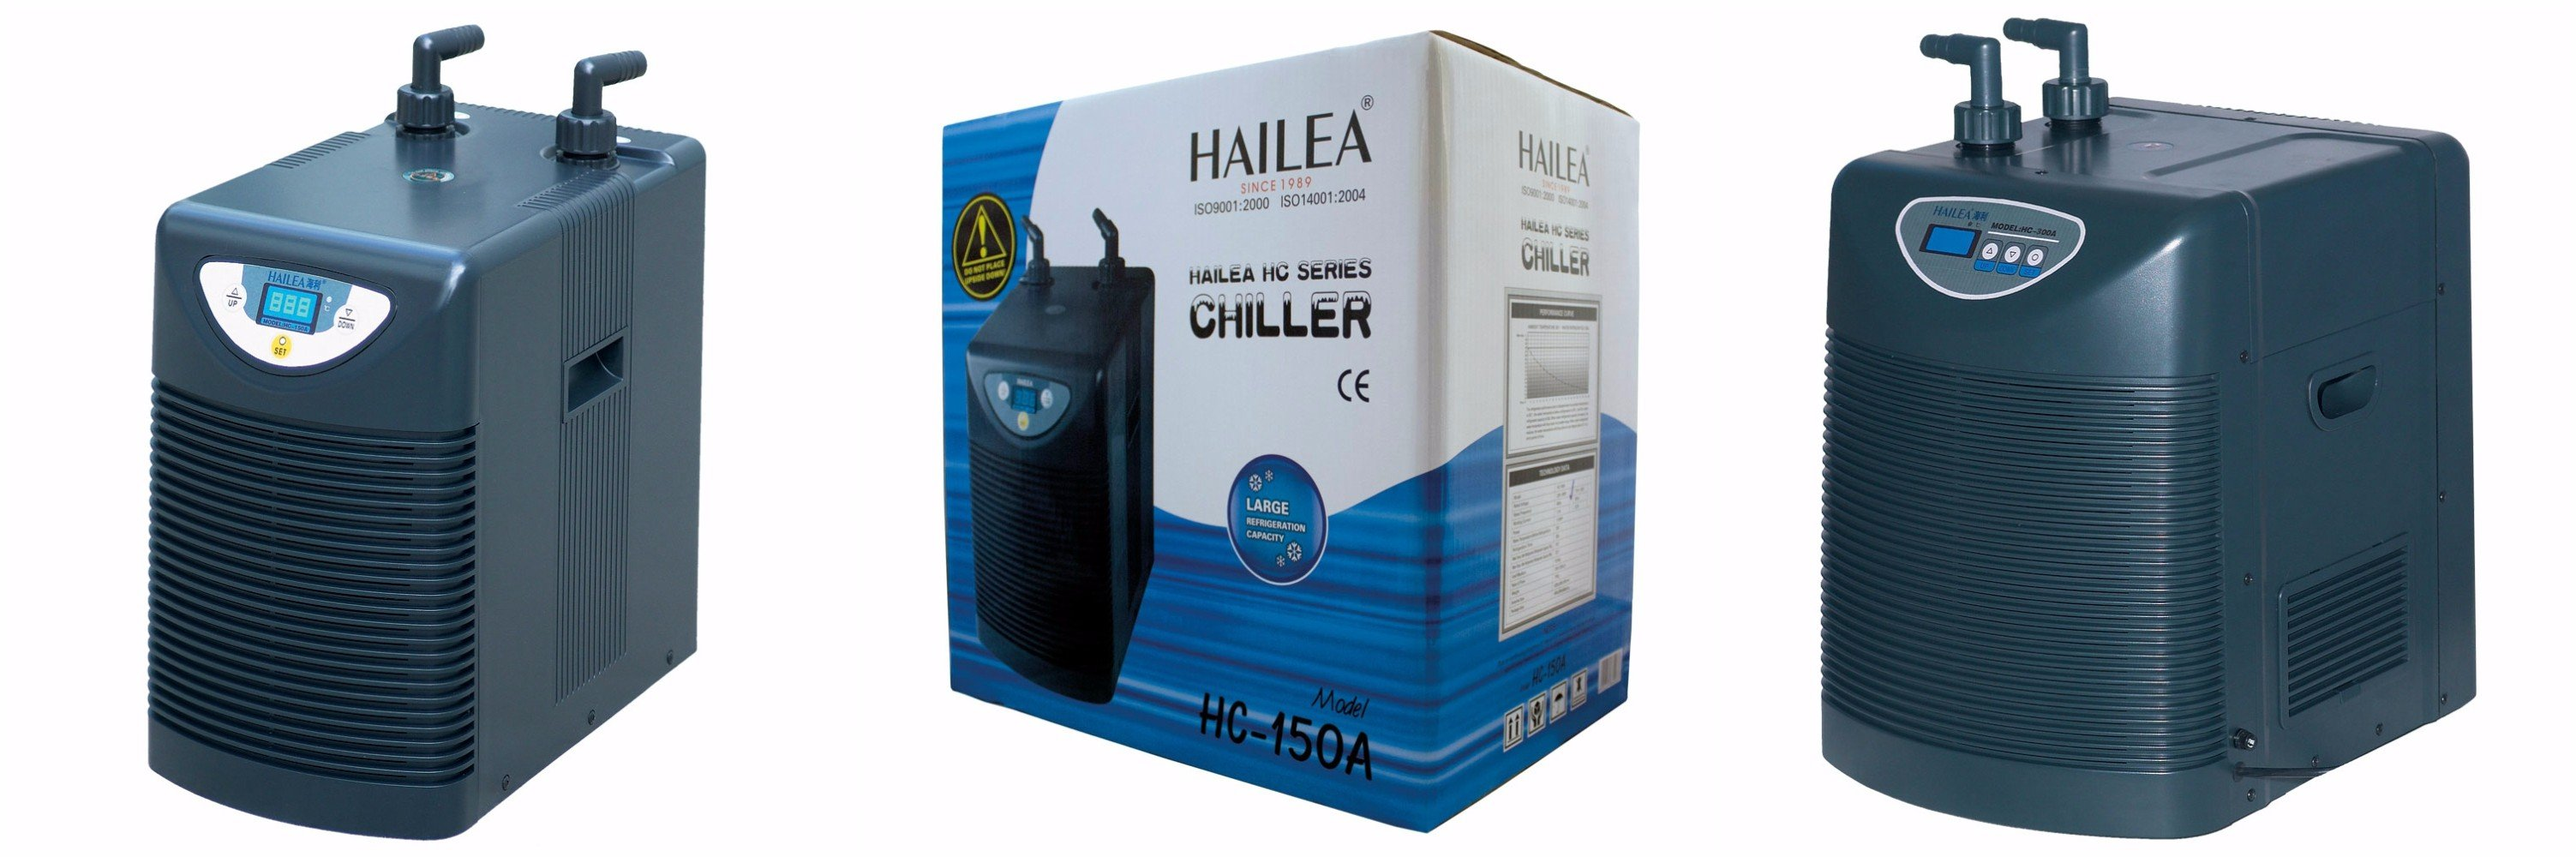 Remove the heat from the water in a hydroponics setup with these water chillers